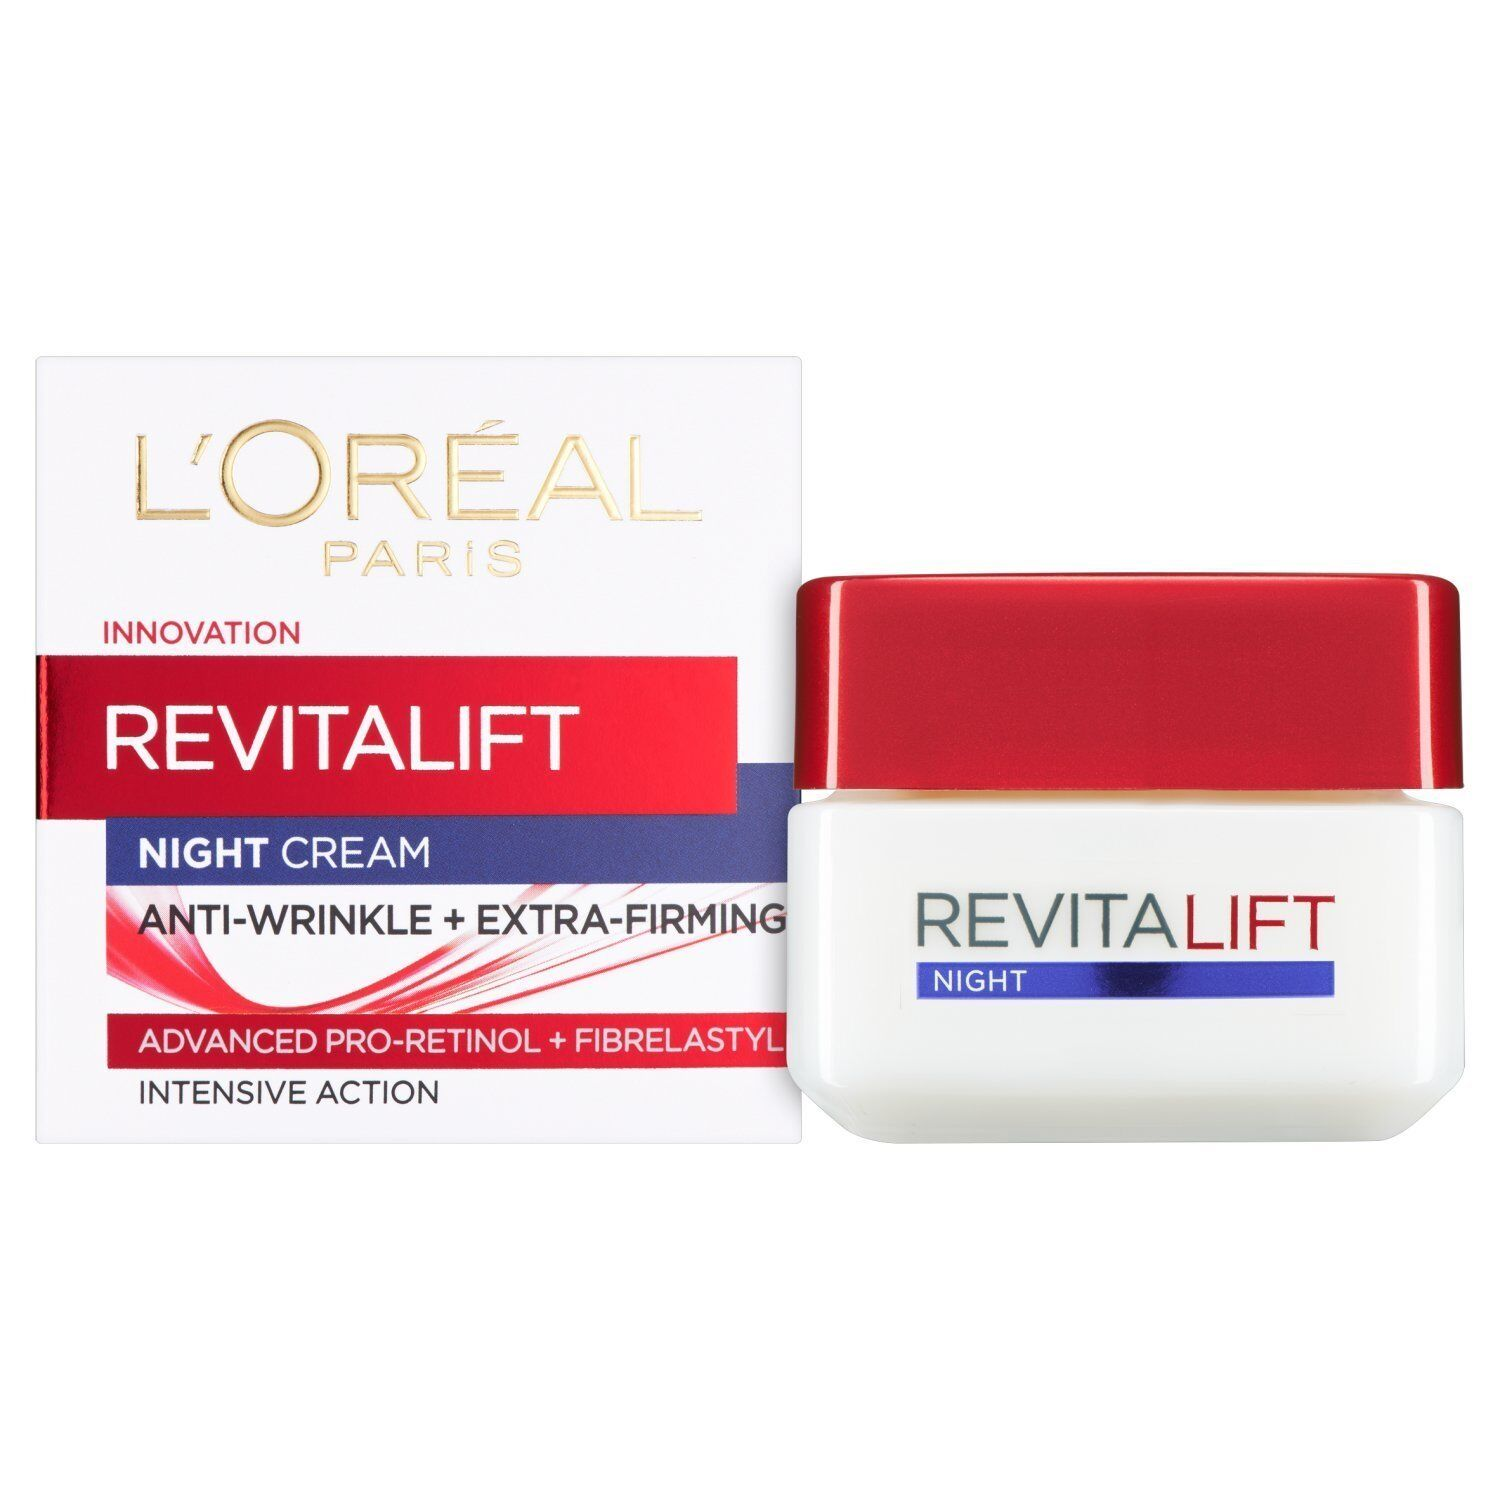 L'Oreal Paris Revitalift Anti-Wrinkle + Firming DAY or NIGHT Cream 50ml